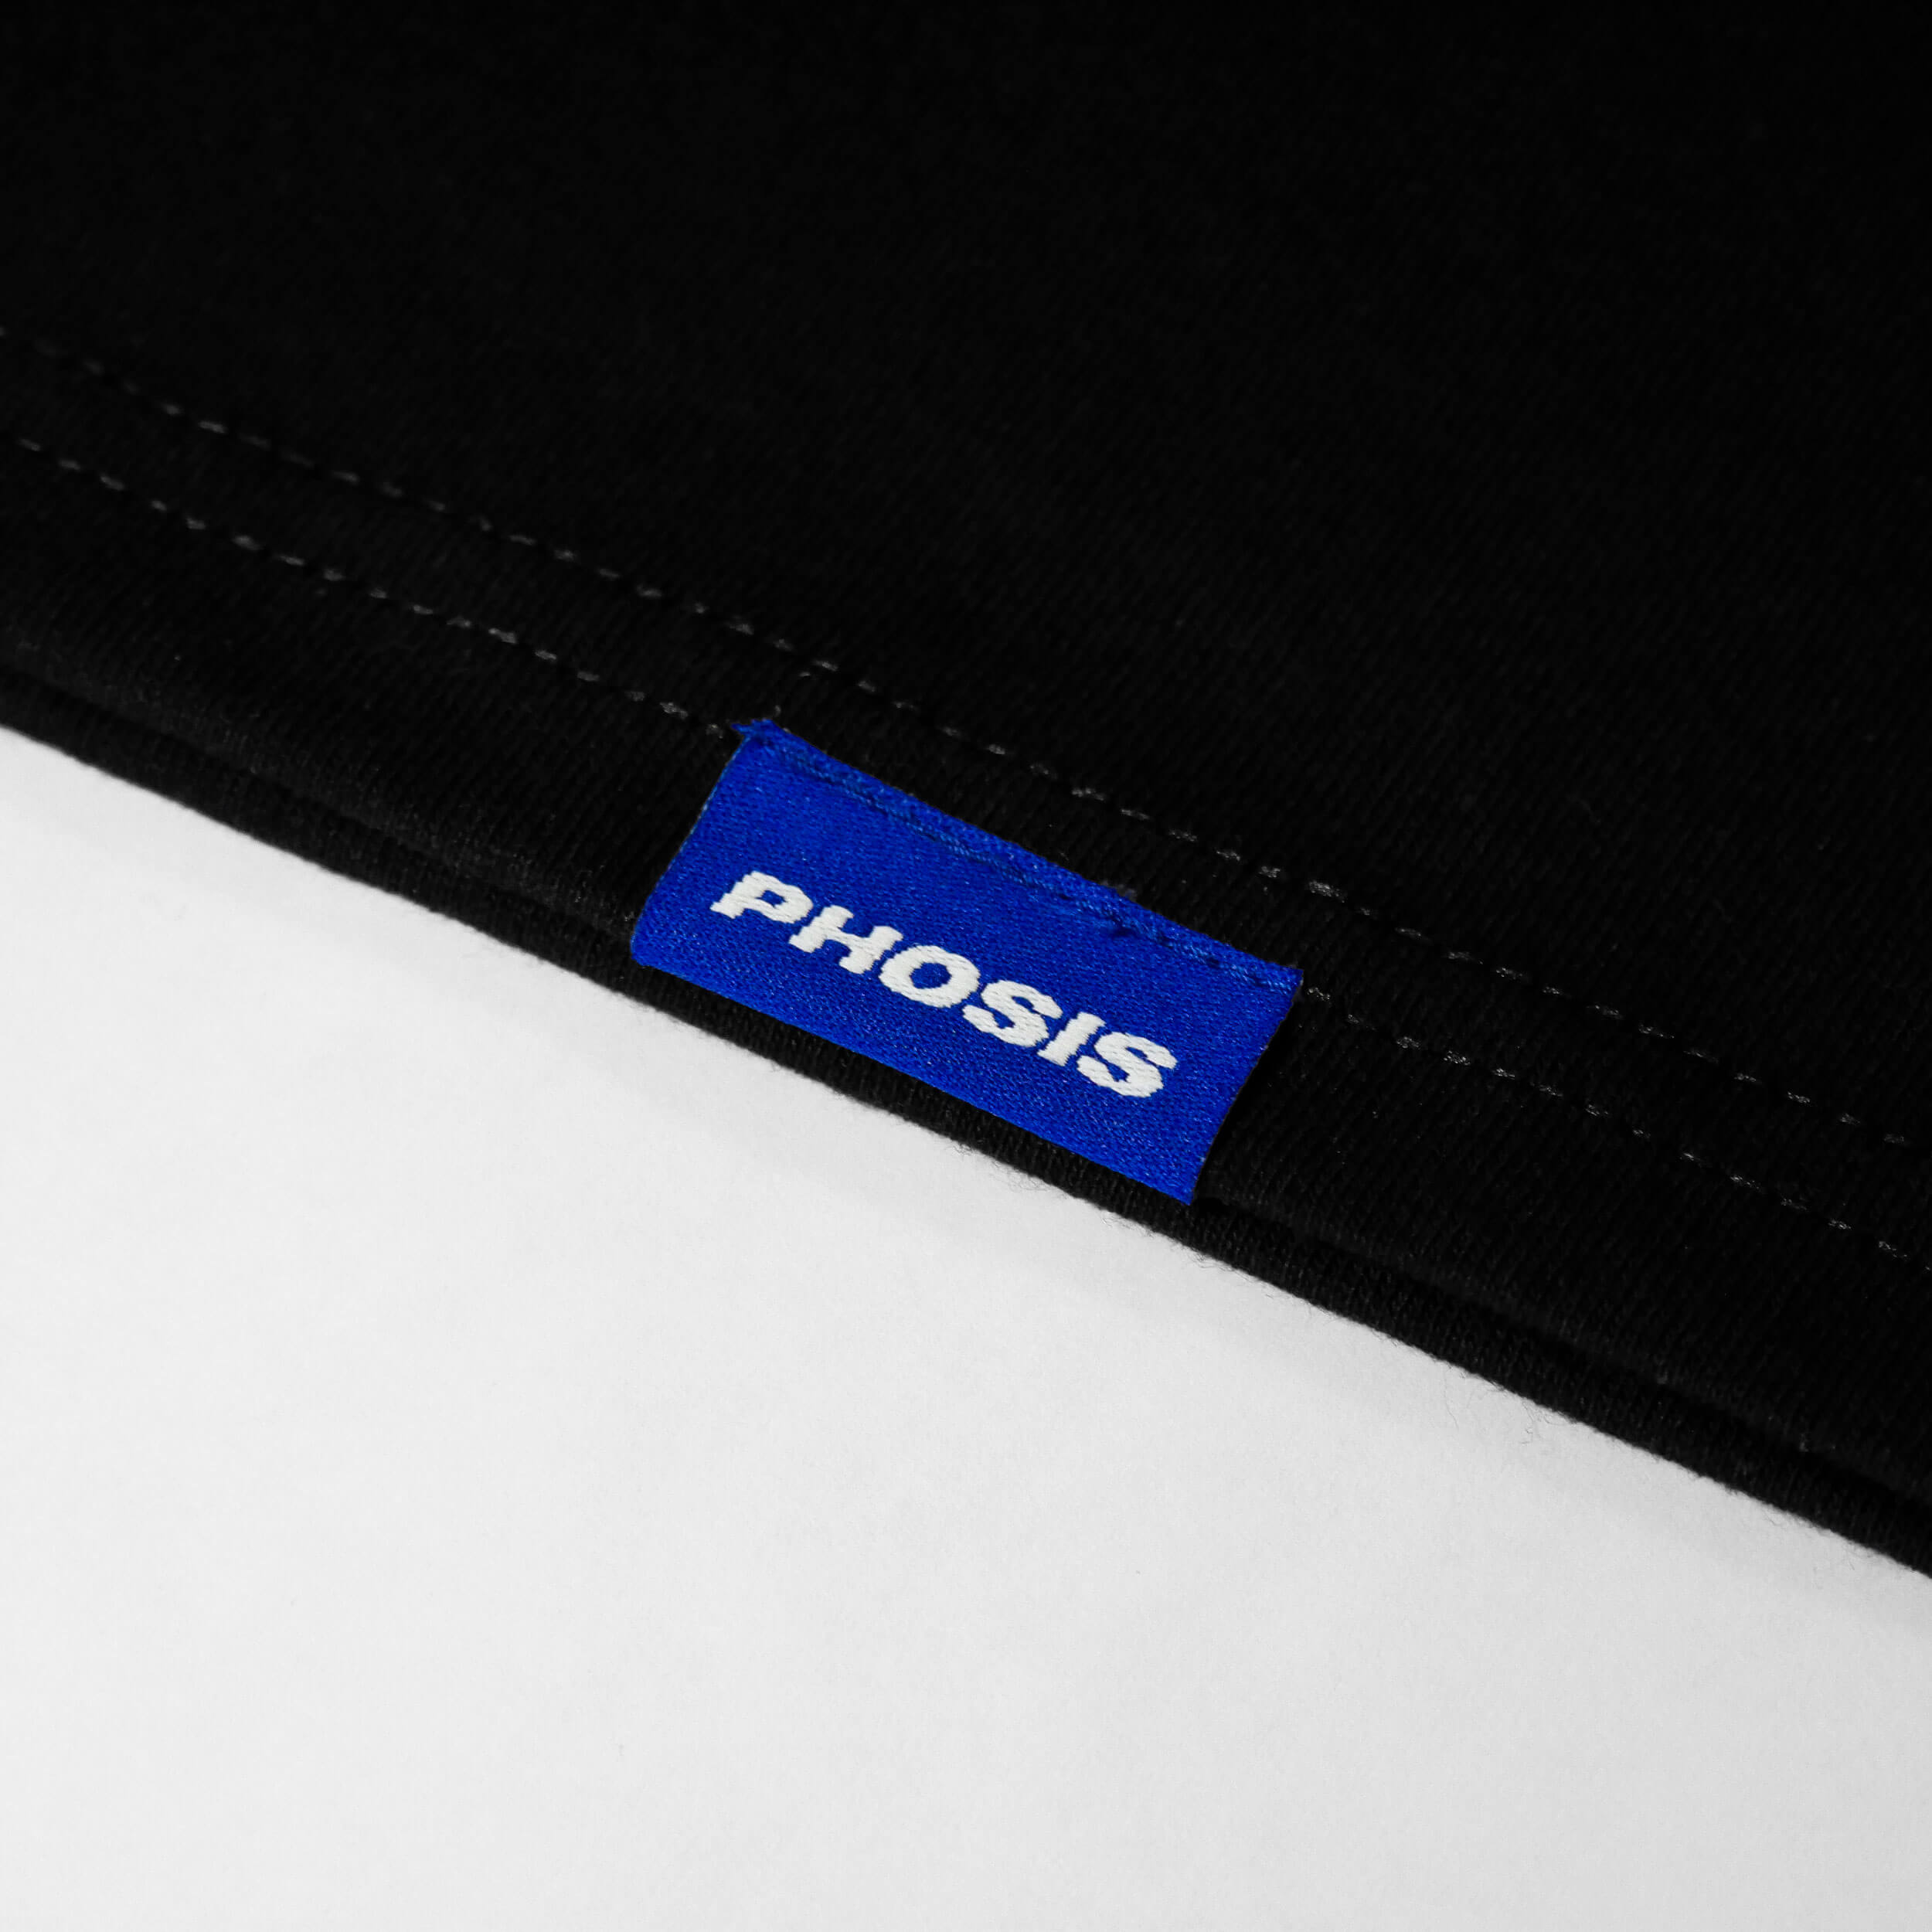 Close up view of the blue woven label in the ANTARTICA POST black t-shirt from PHOSIS Clothing